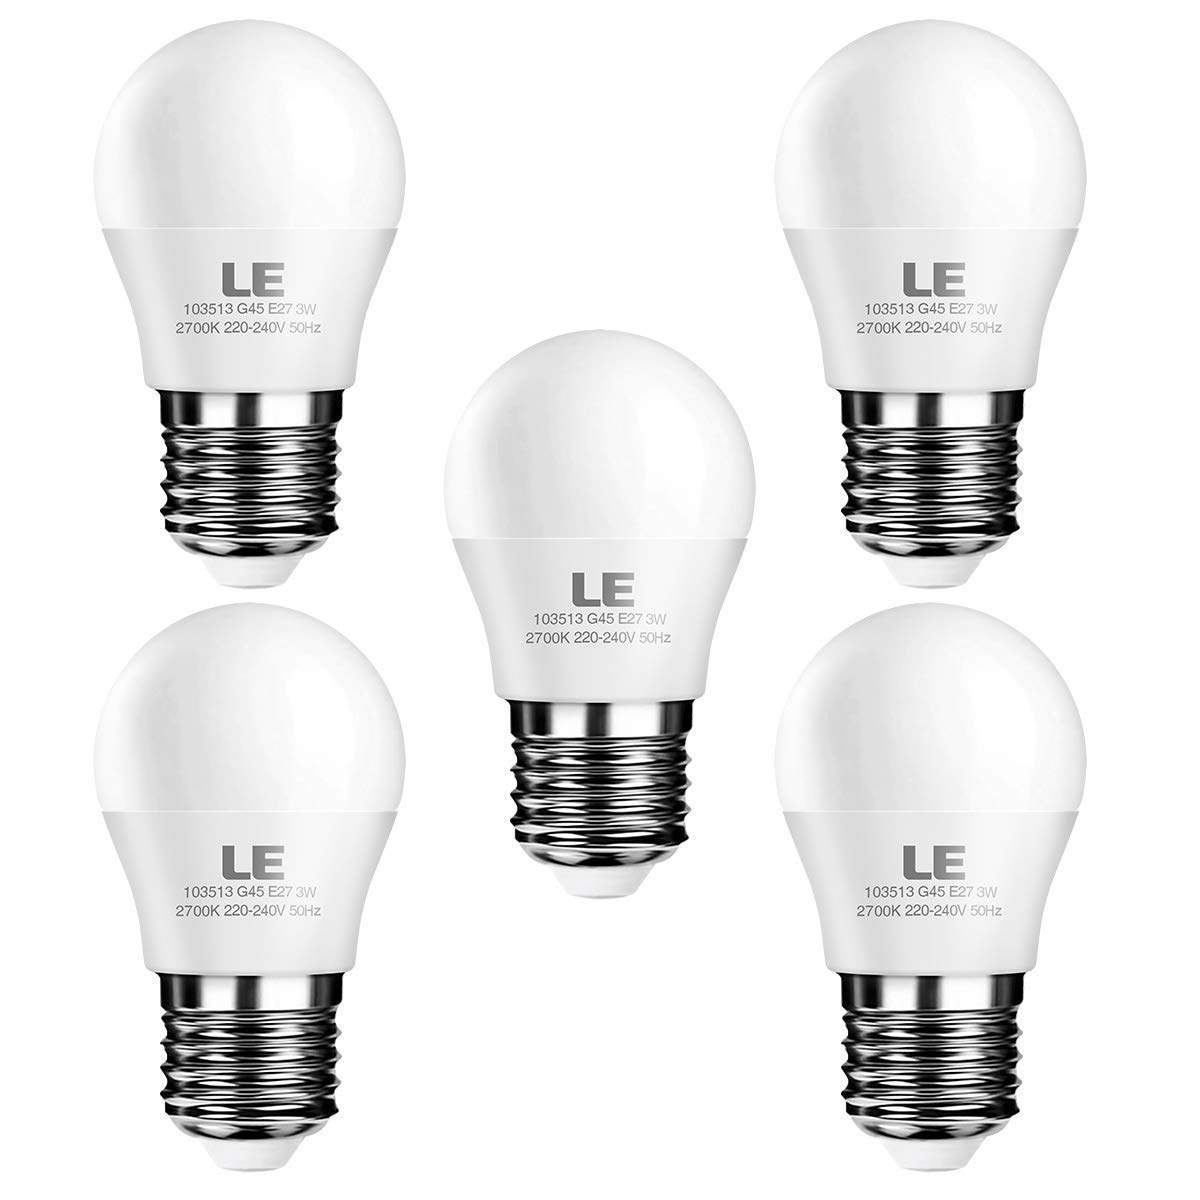 Ampoule De 25wNon 160°Equivalent E27 Diffusion Le Ampoules Led À Dimmable Ever Lighting 3w240lmAngle Incandescente zqUVGSMp